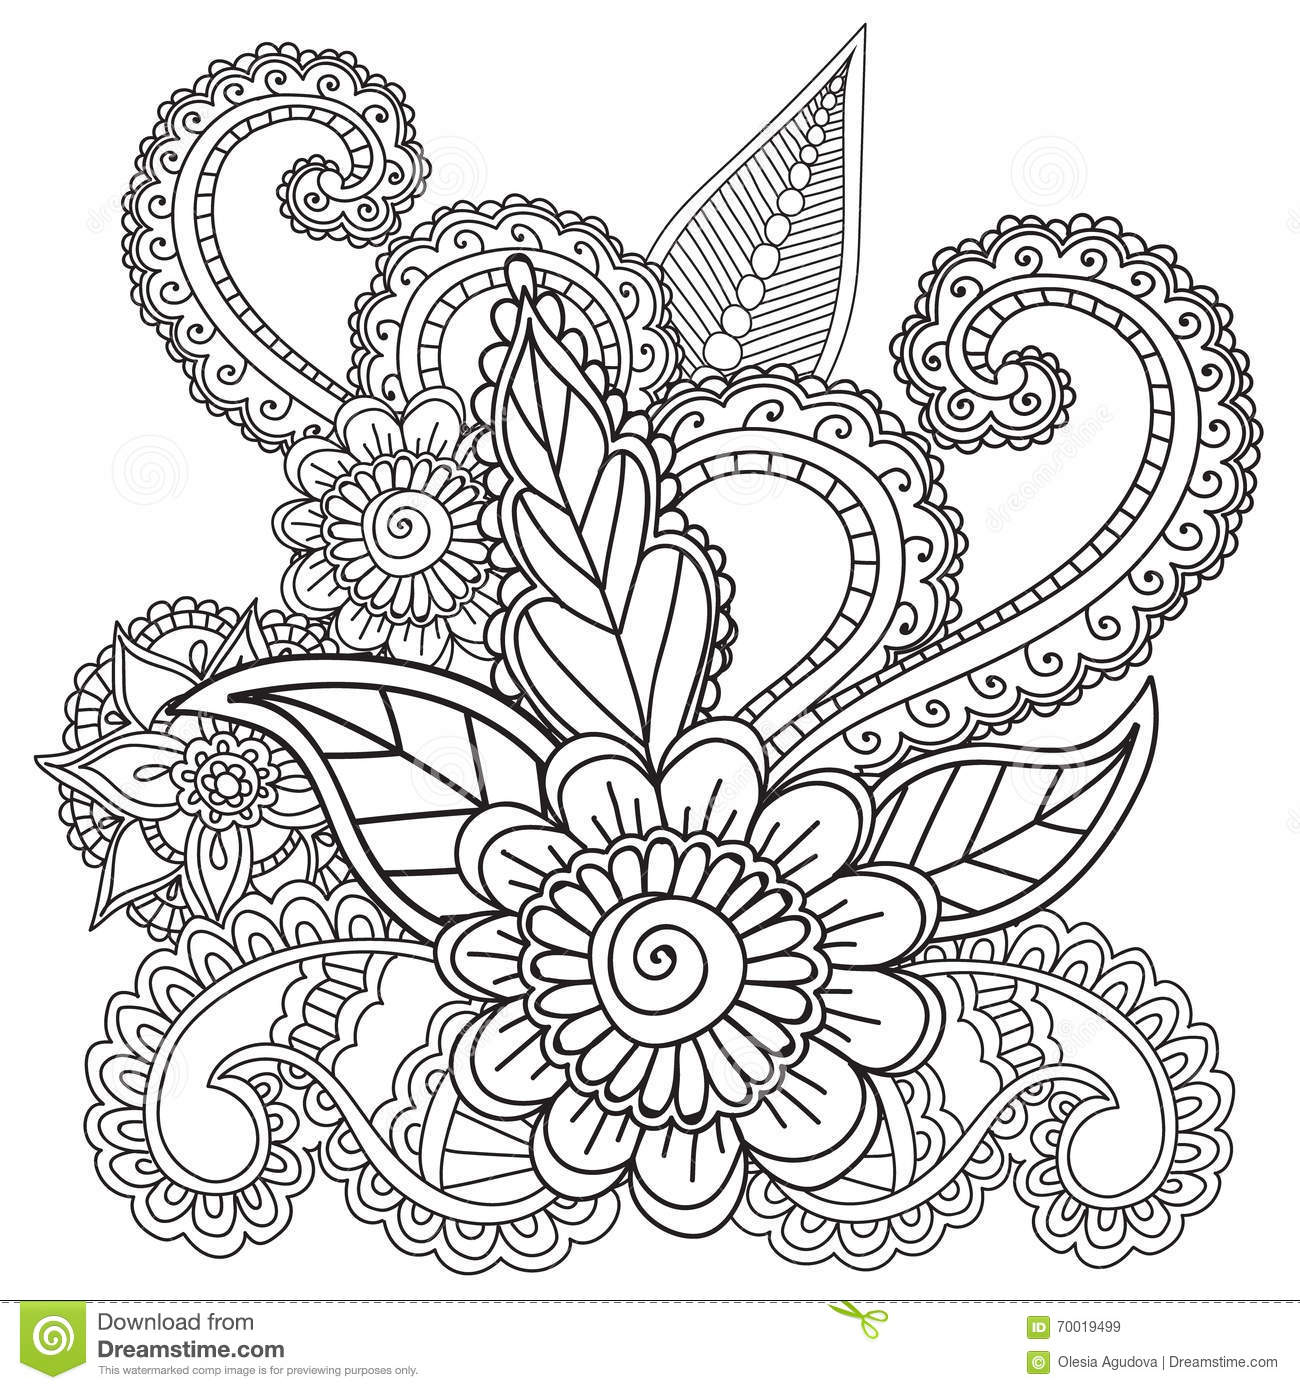 mehndi designs coloring book pages - photo#19